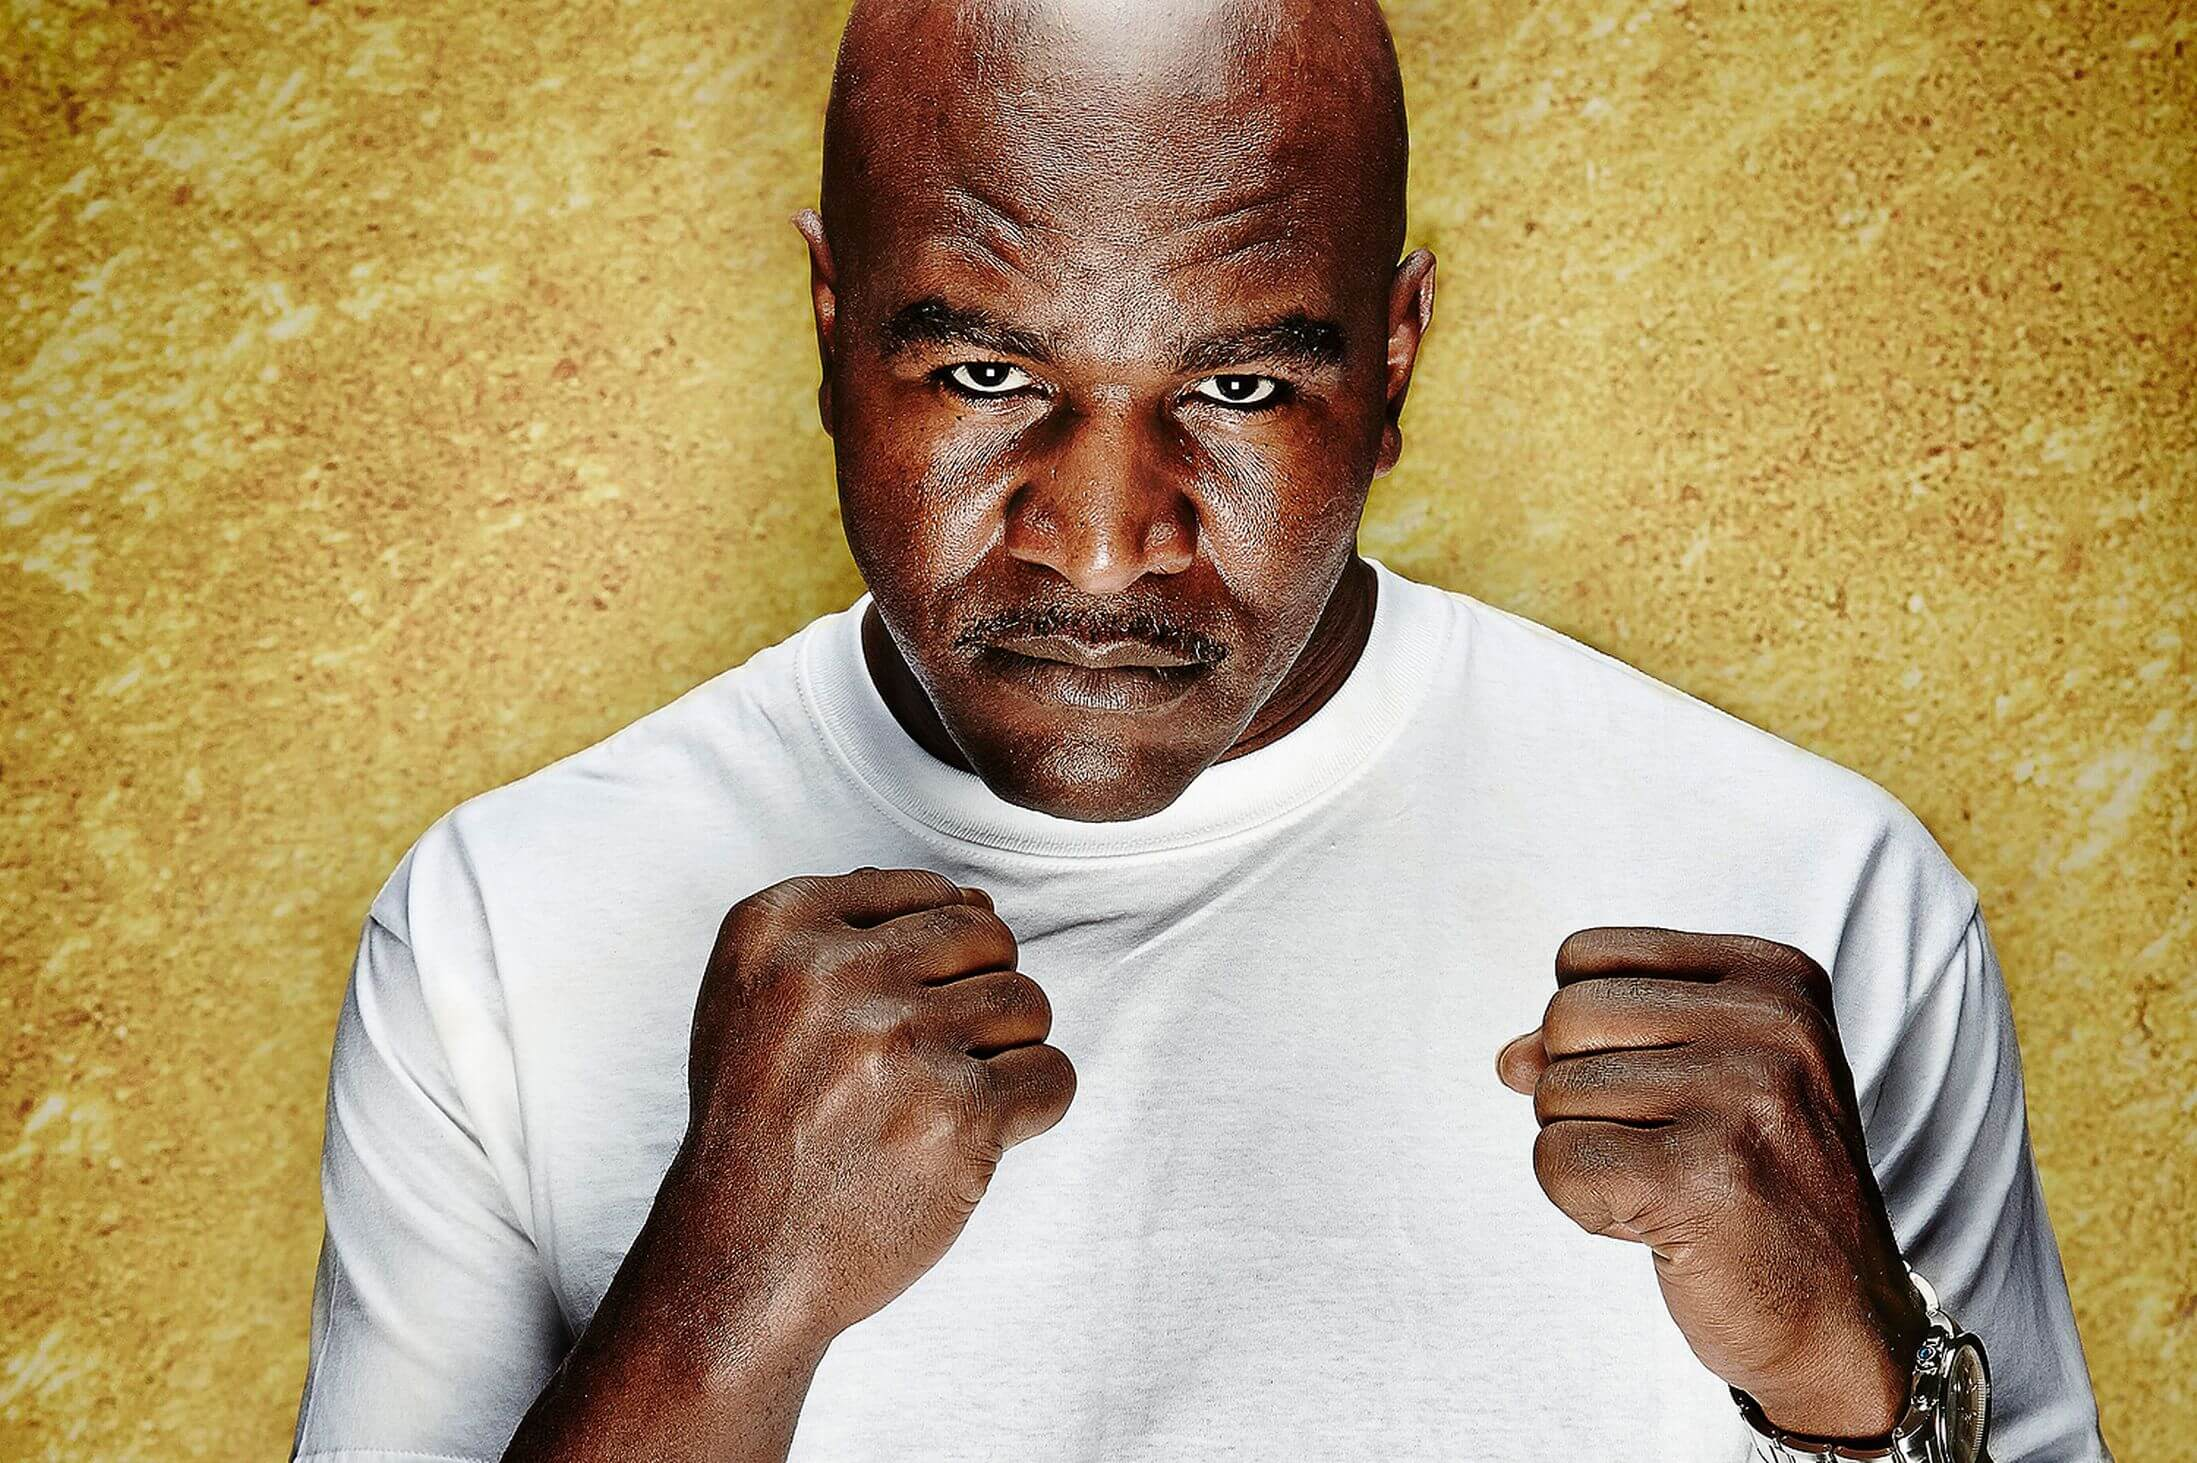 #9 Evander Holyfield | Celebrities Who Lost Their Homes | Image Source: desdeelring.com